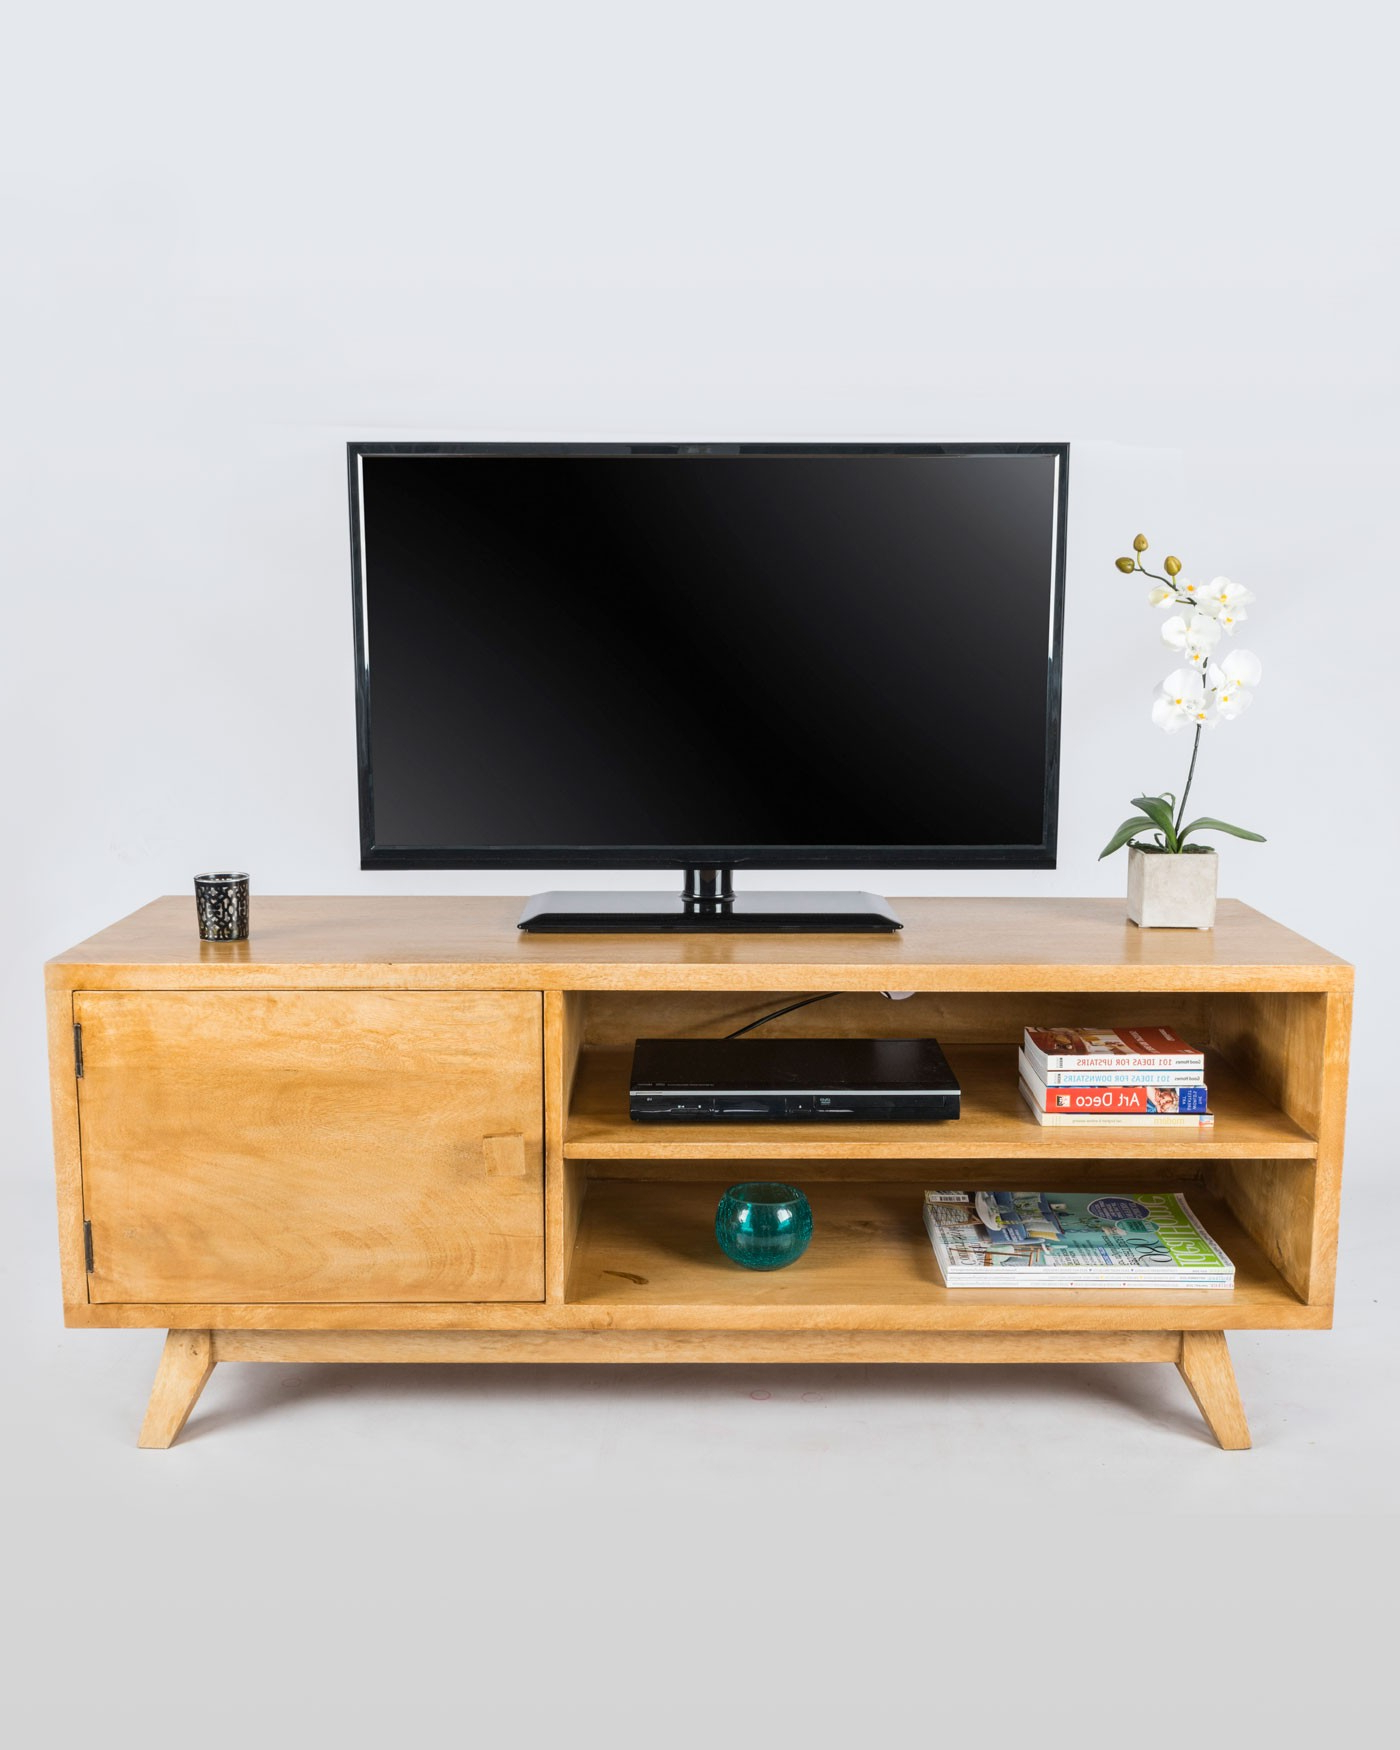 [%Retro Wooden Tv Stand With Shelf 100% Solid Mango Wood Oak Shade For Most Up To Date Mango Tv Stands|Mango Tv Stands Inside Most Current Retro Wooden Tv Stand With Shelf 100% Solid Mango Wood Oak Shade|Preferred Mango Tv Stands For Retro Wooden Tv Stand With Shelf 100% Solid Mango Wood Oak Shade|Well Liked Retro Wooden Tv Stand With Shelf 100% Solid Mango Wood Oak Shade Inside Mango Tv Stands%] (View 1 of 20)